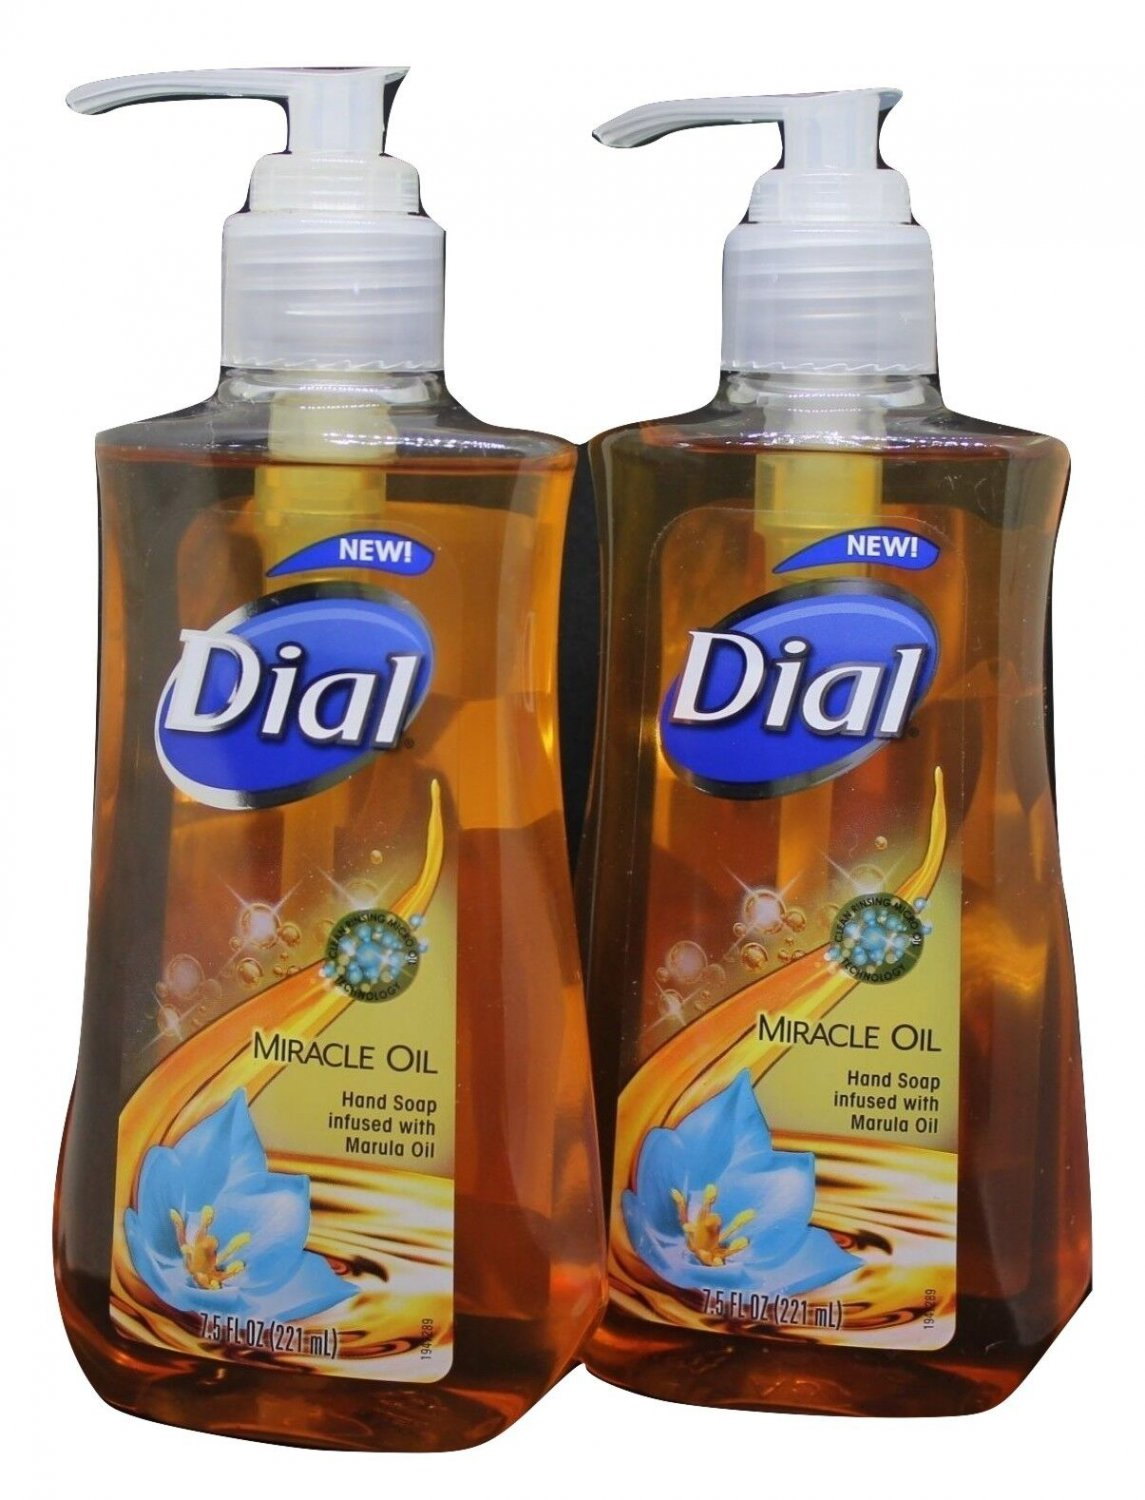 Dial Liquid Hand Soap Miracle Oil 7.5 oz Infused with Marula Oil 2 Pack